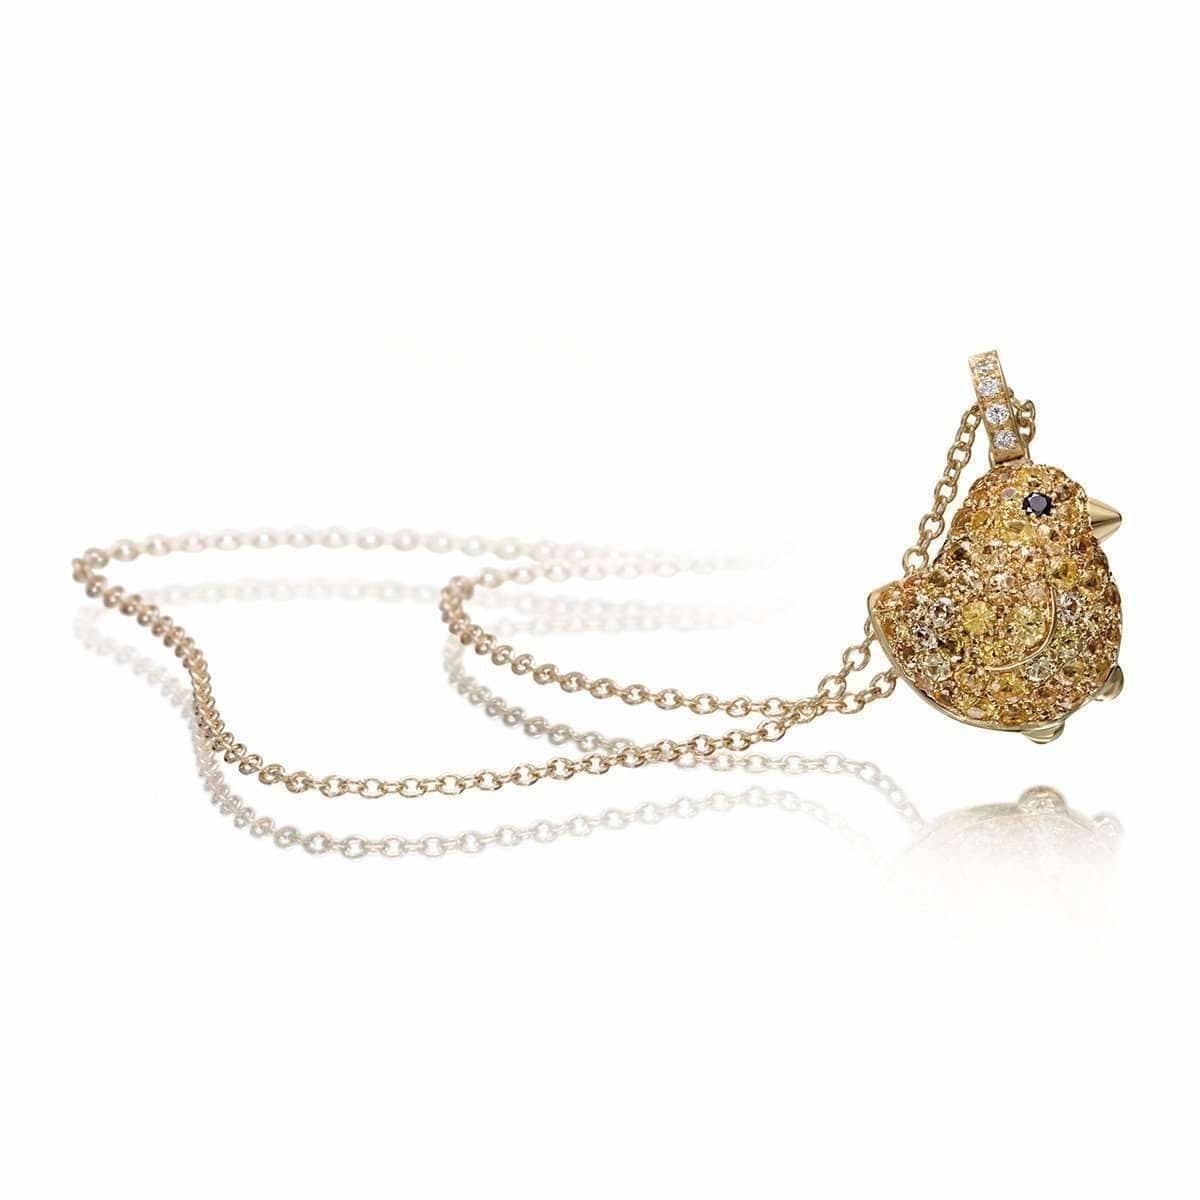 Gold & Sapphire Pet Jewels Collection Chick Necklace   Pinomanna